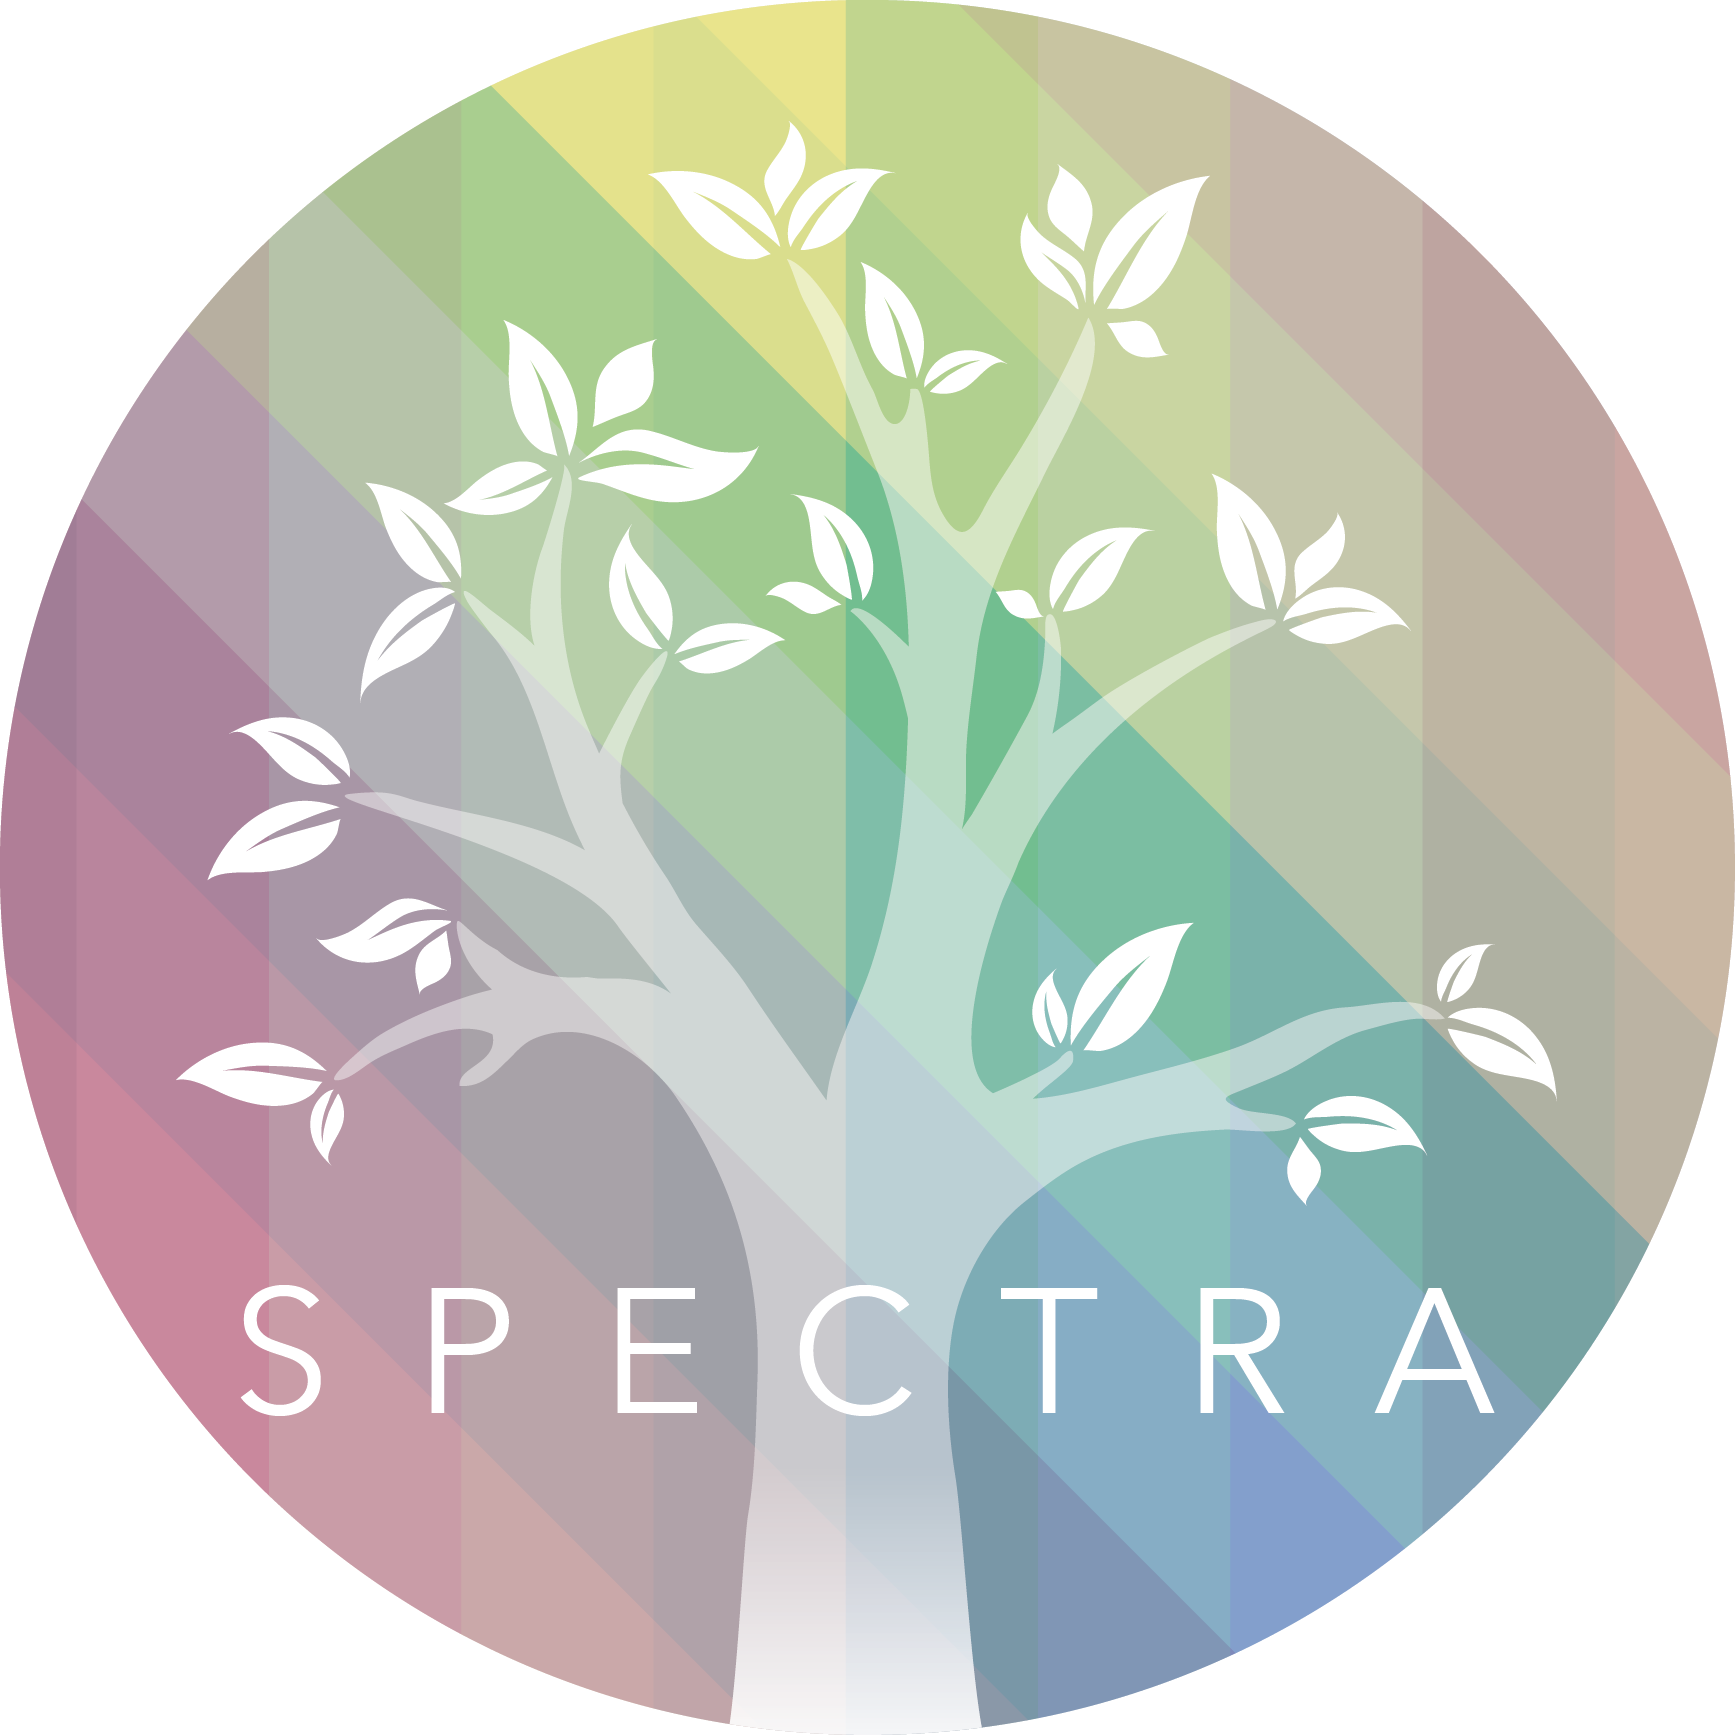 SPECTRA-Colourful logo with a tree at its centre